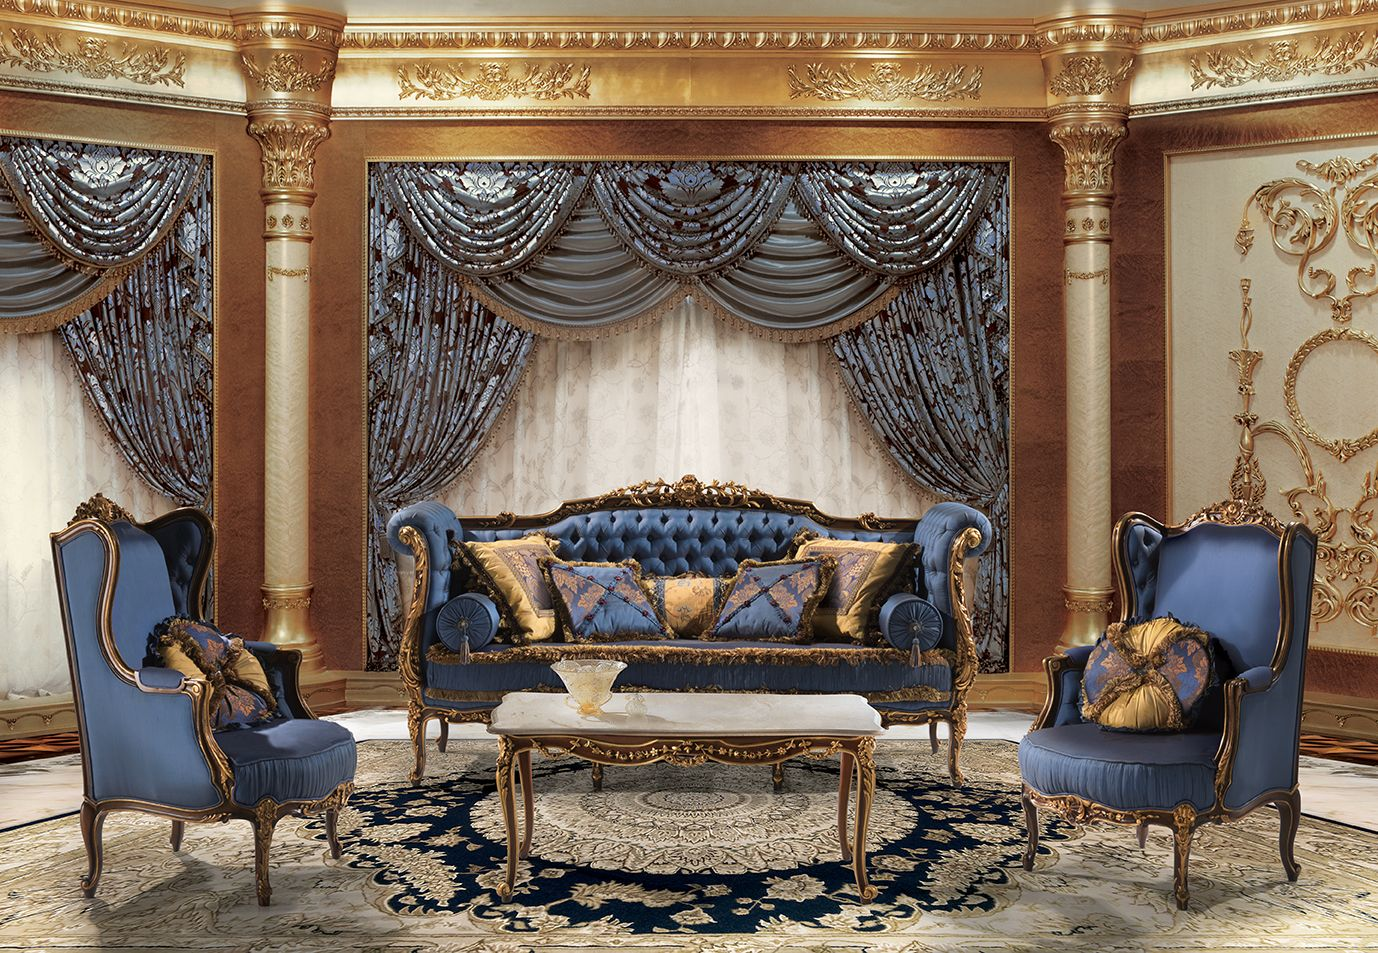 Rimbaud Classic Italian Blue Sofa For Luxury Sitting Room Classic Furniture Living Room Luxury Italian Furniture Living Room Decor Apartment